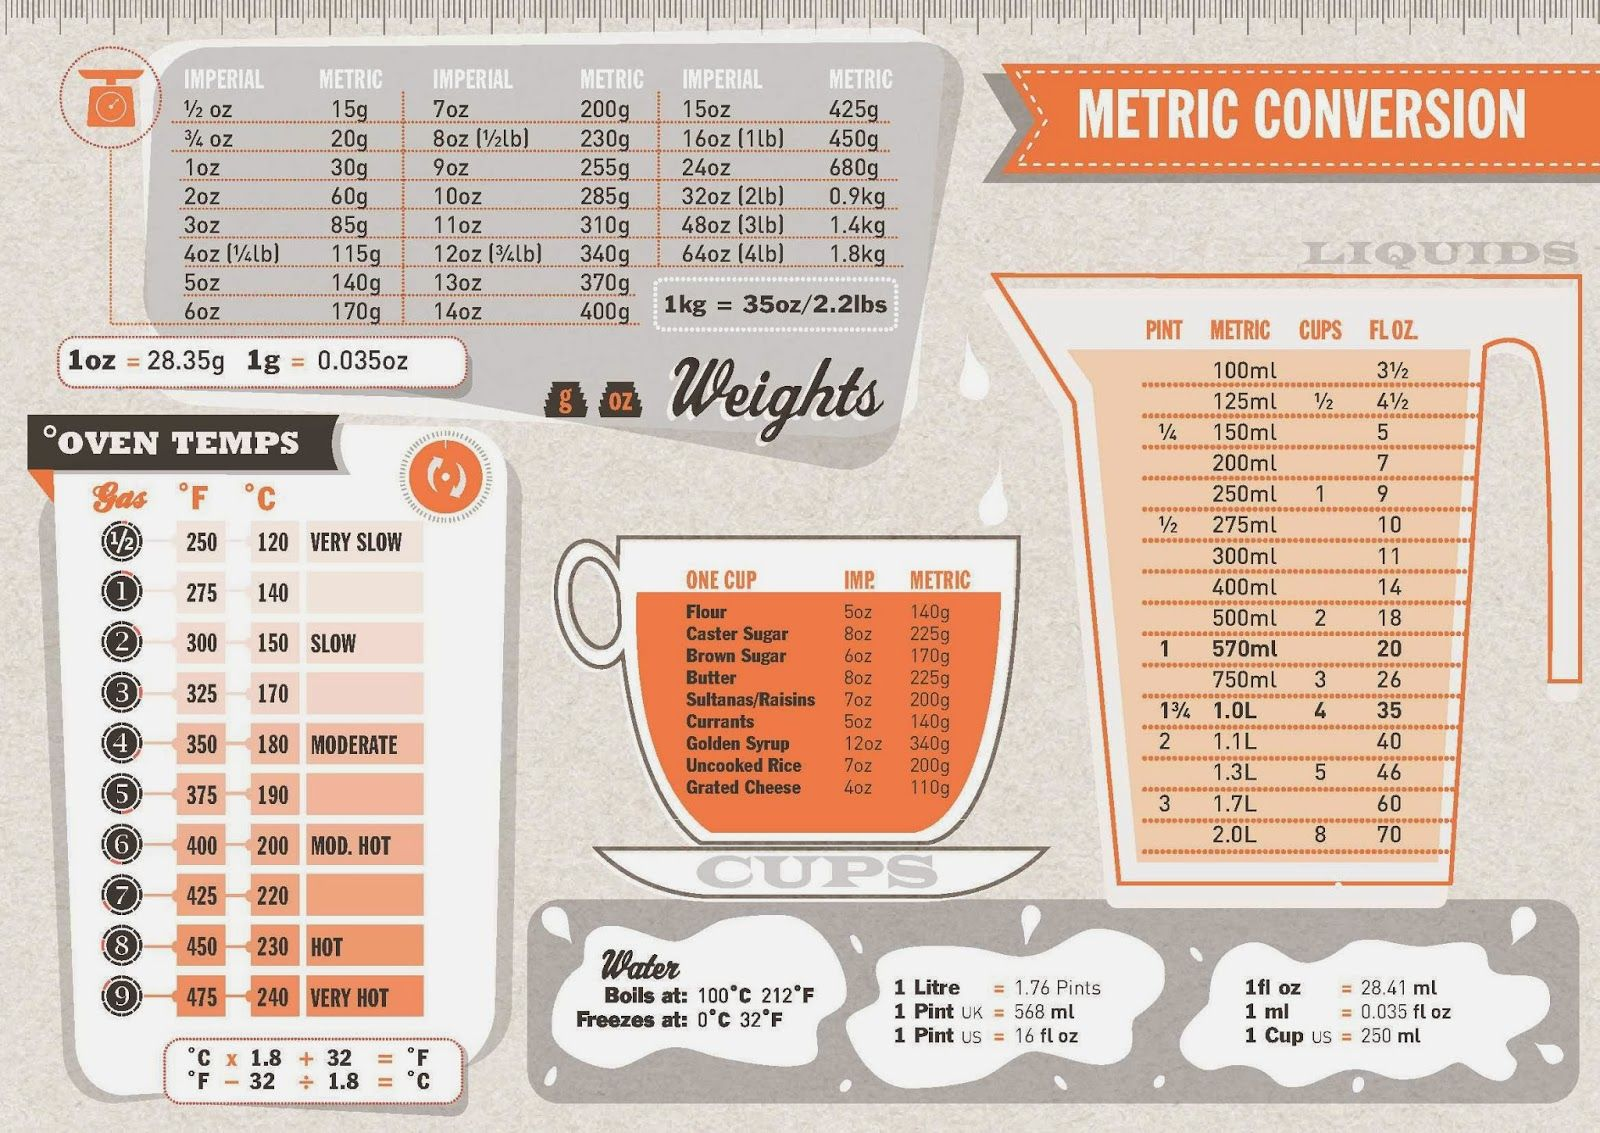 Metric system conversions metric system conversion baked food and metric system conversions nvjuhfo Image collections